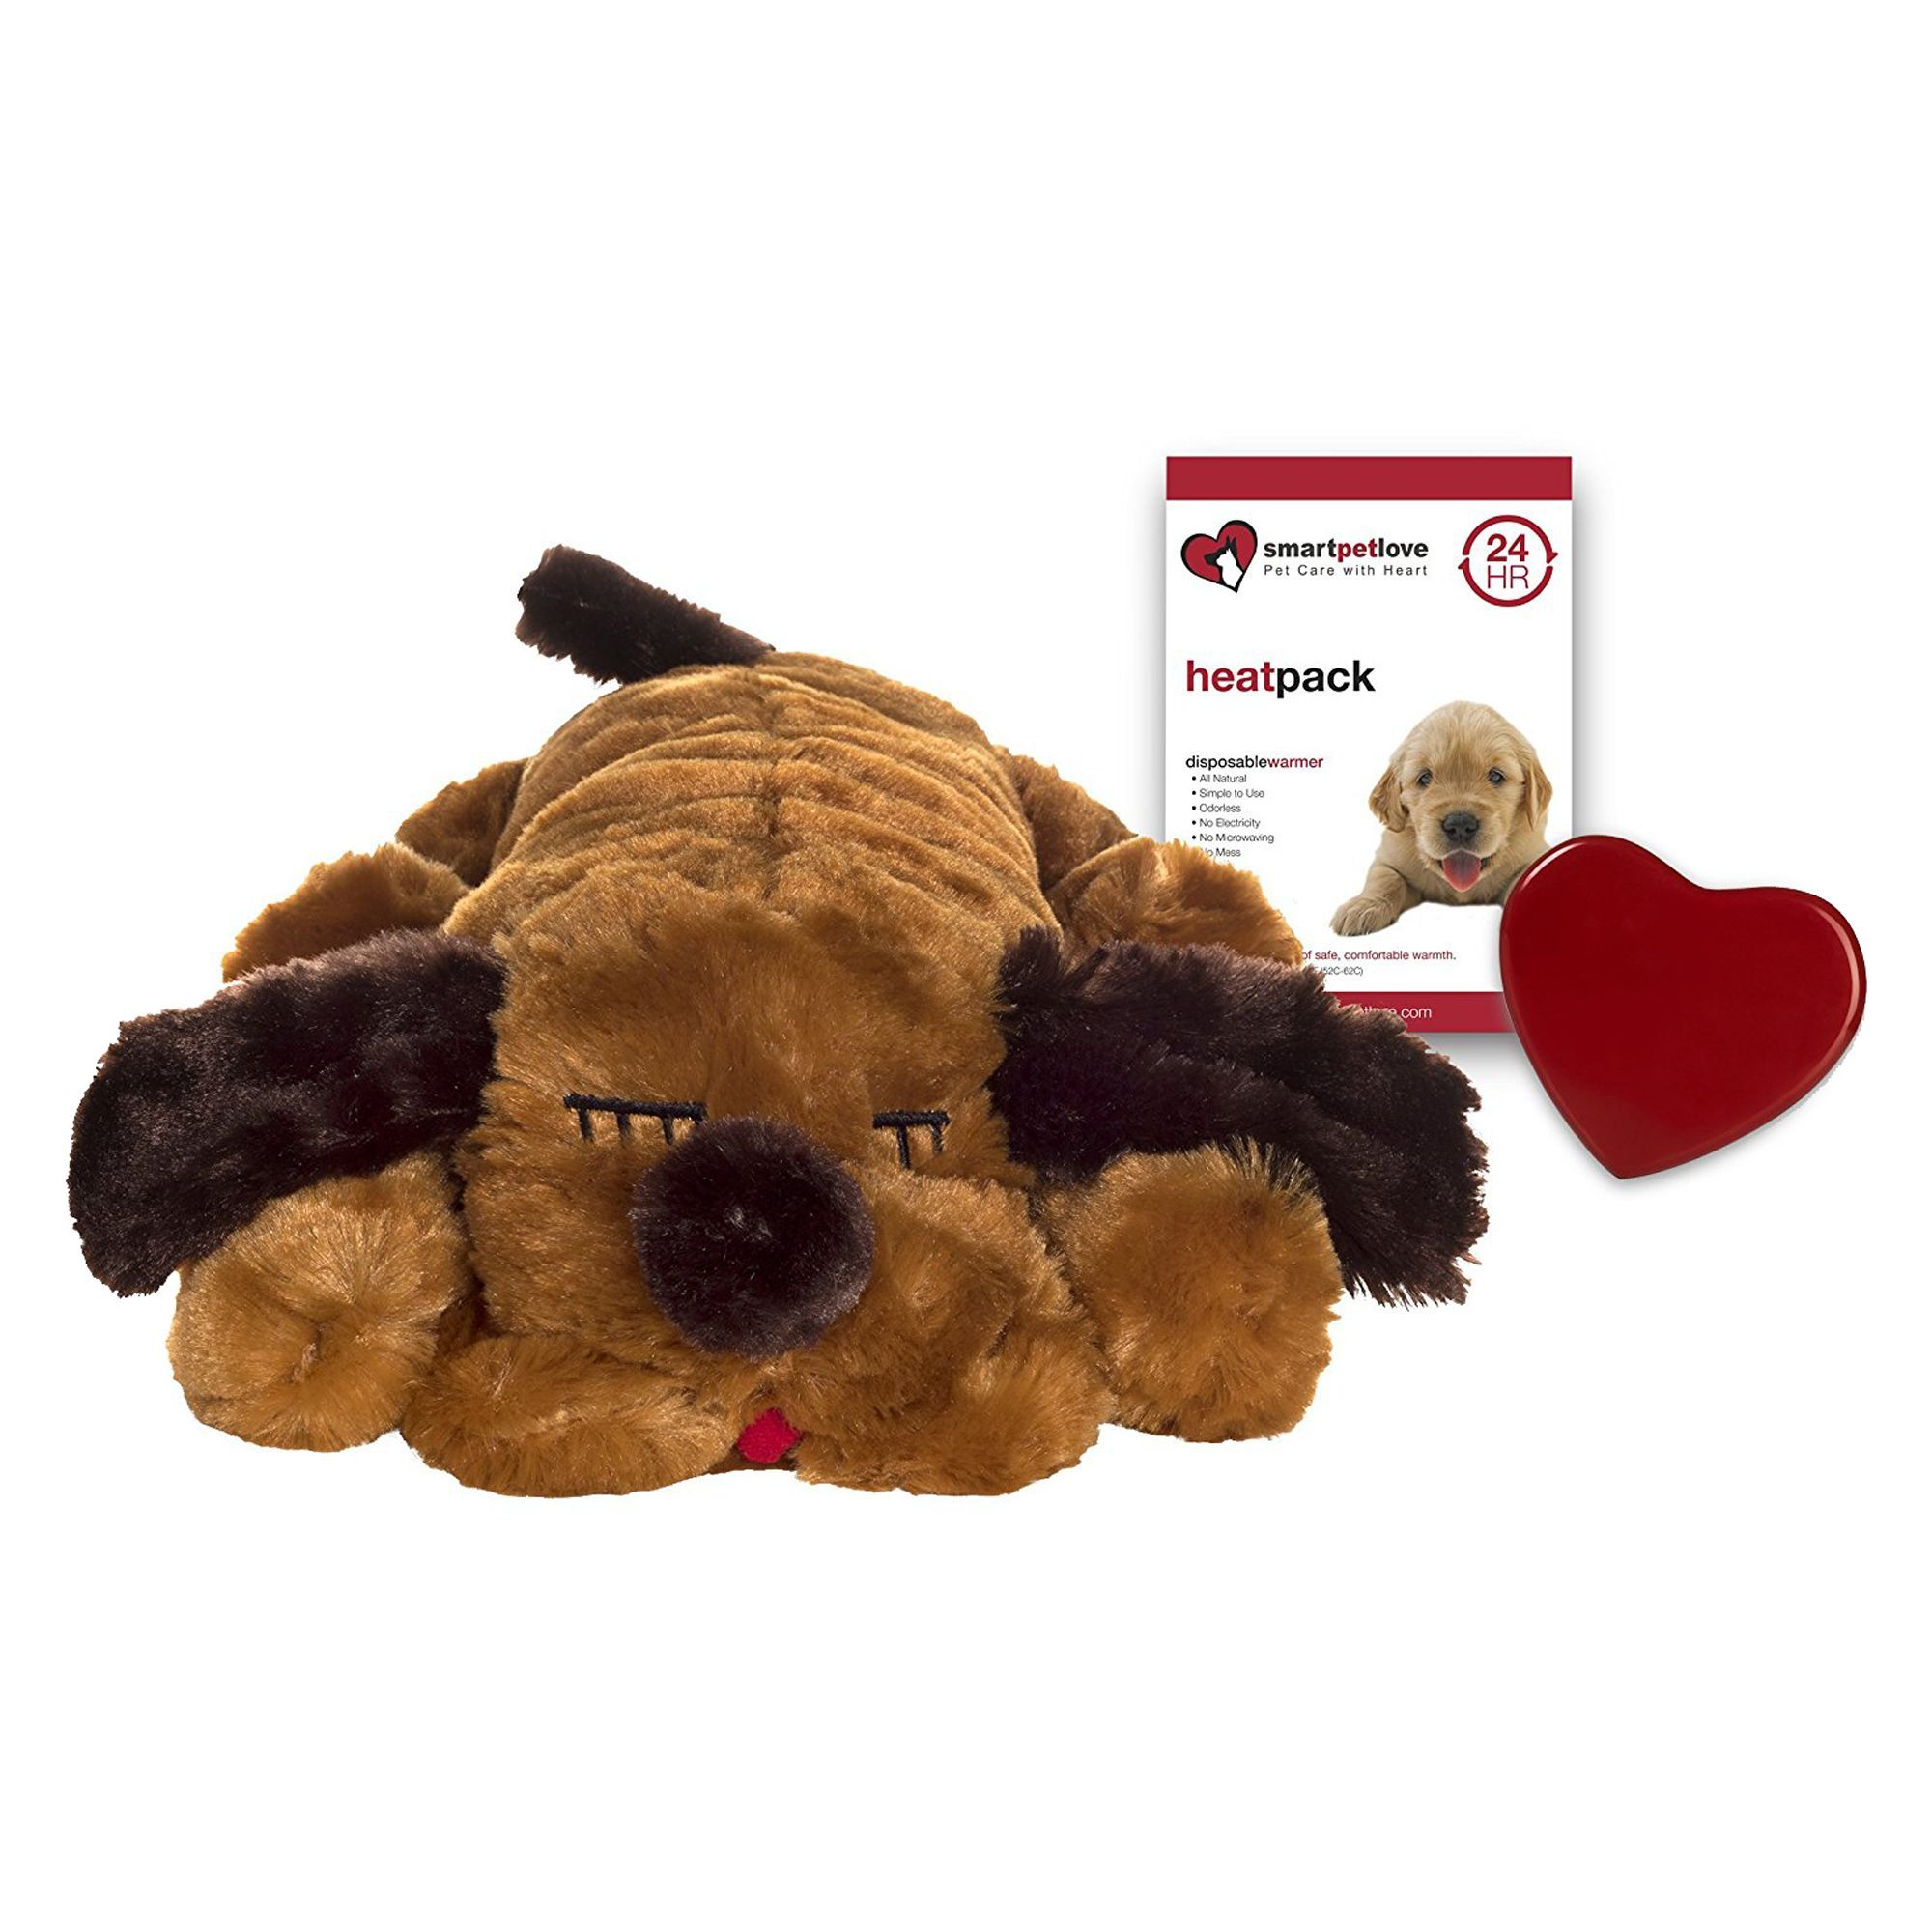 Smart Pet Love Snuggle Puppy Behavioral Aid Dog Toy Toy Puppies